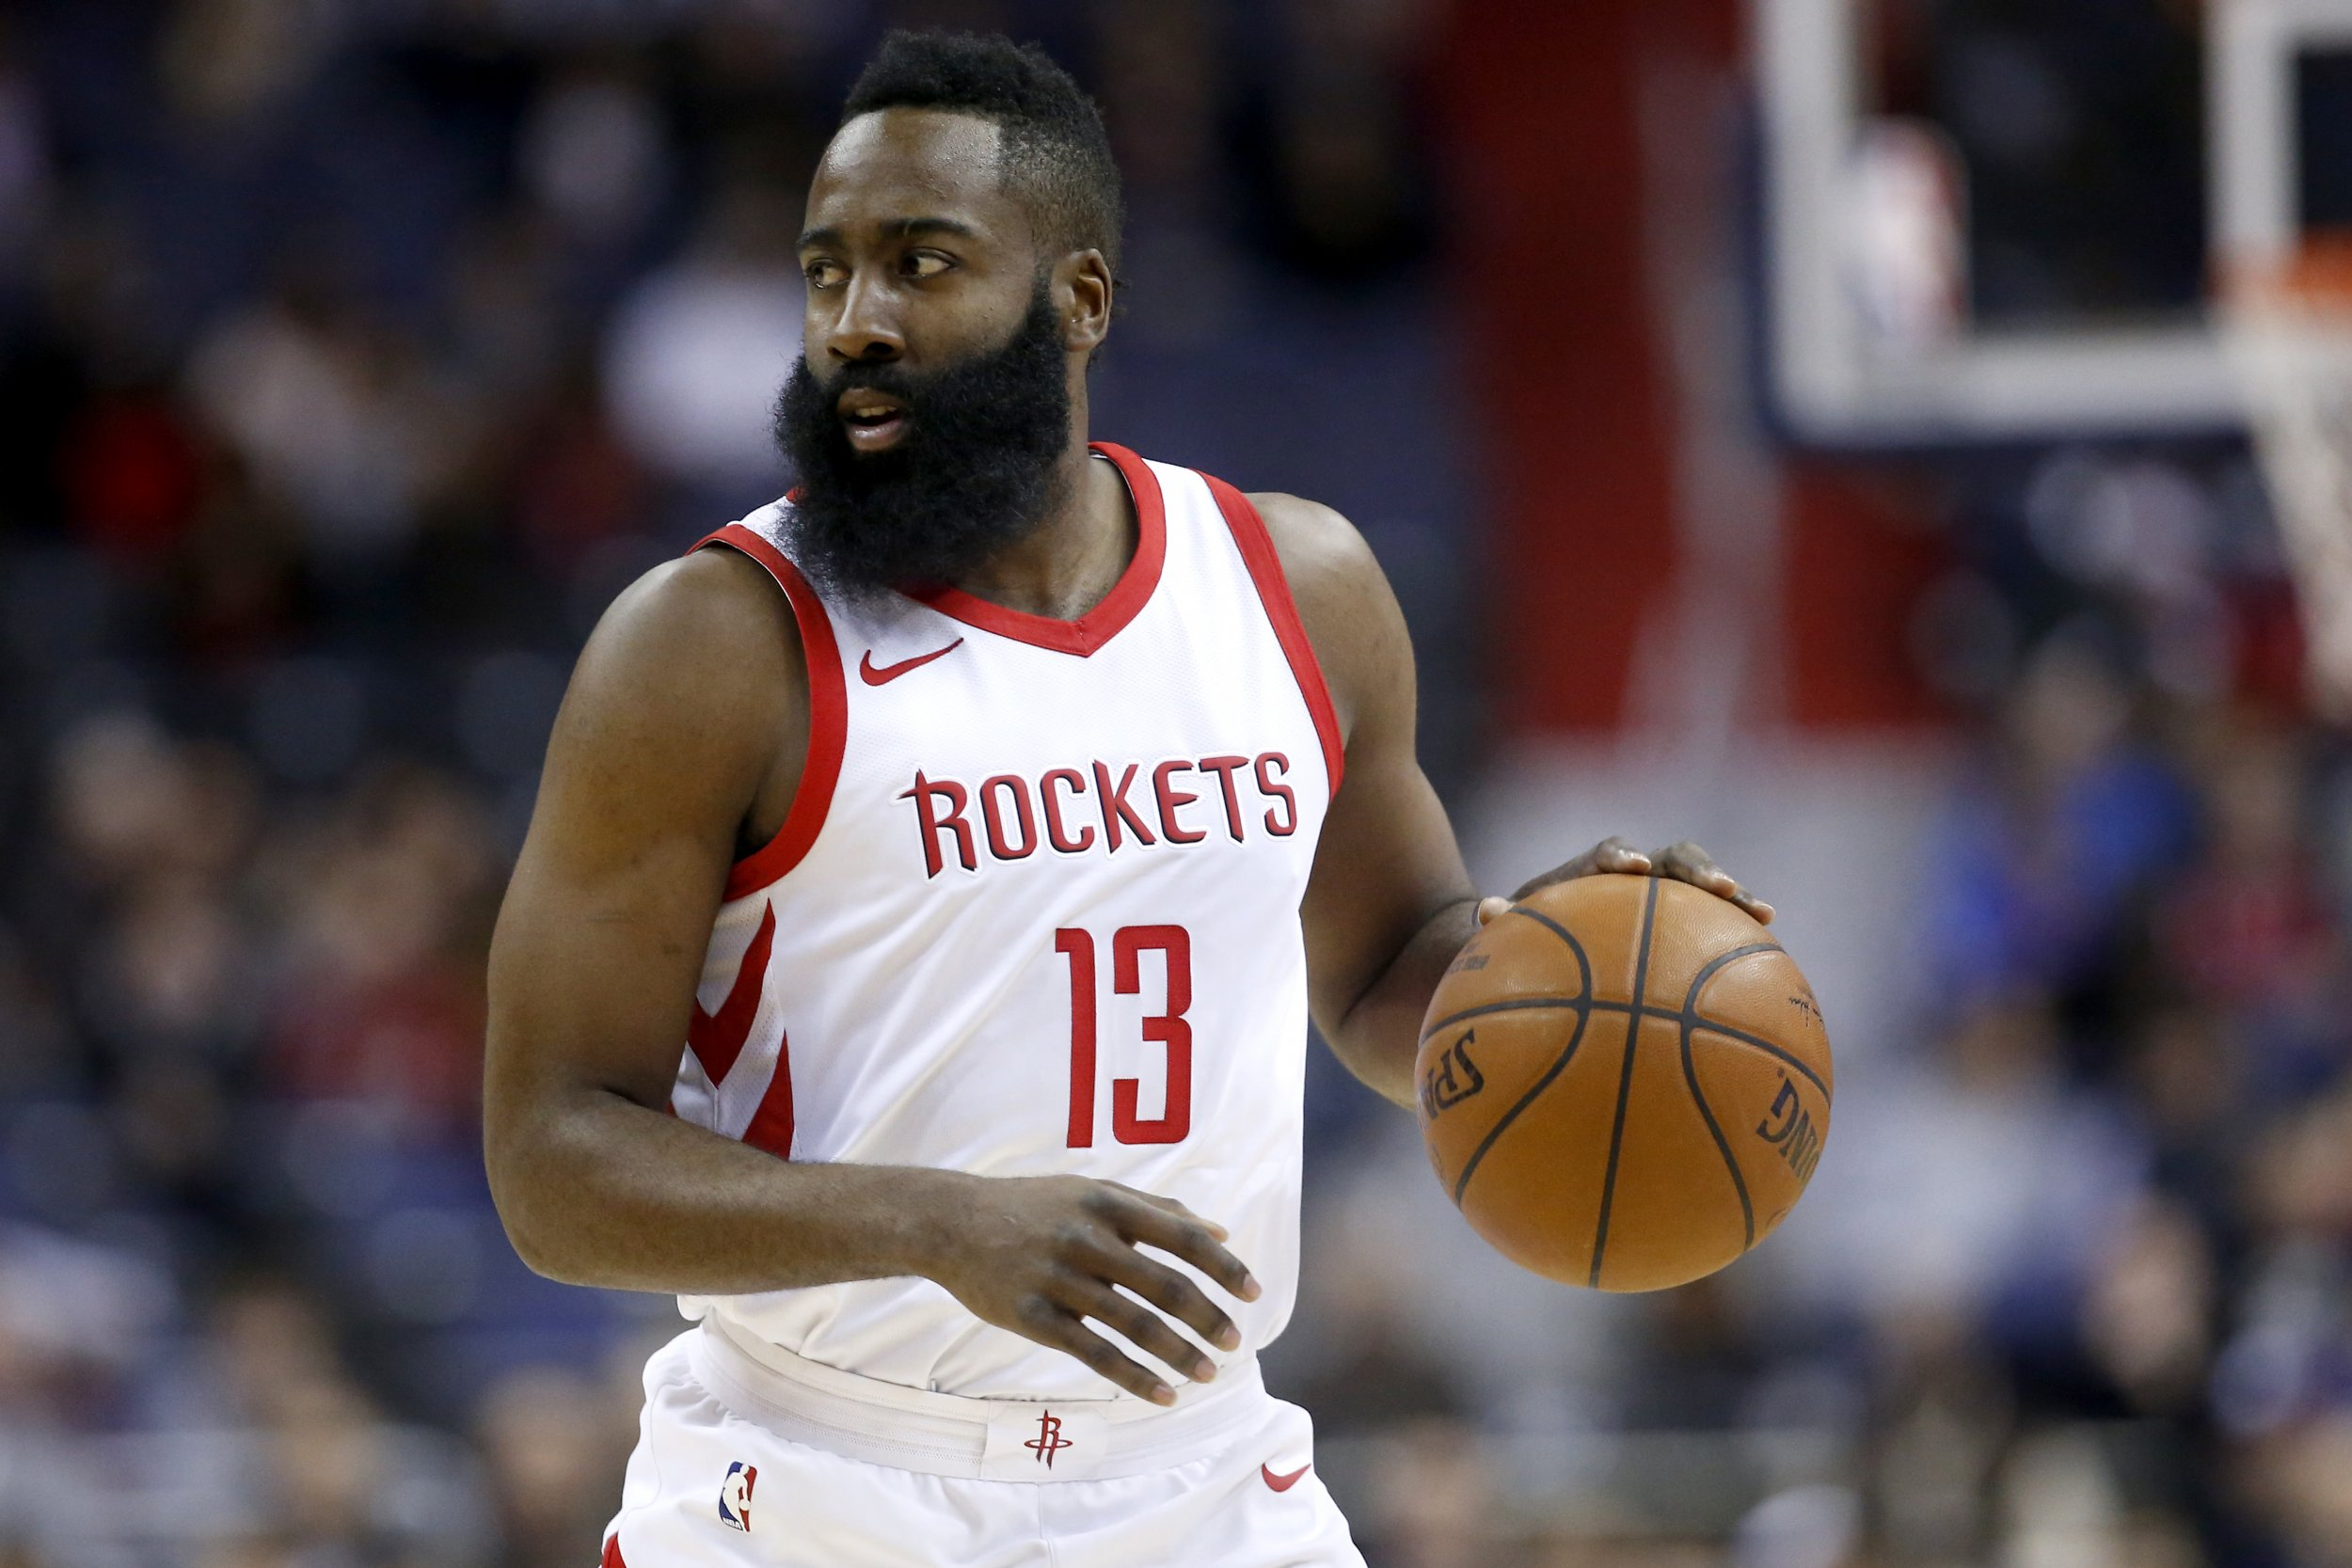 James Harden of the Houston Rockets at Capital One Arena, Washington D.C., December 29.